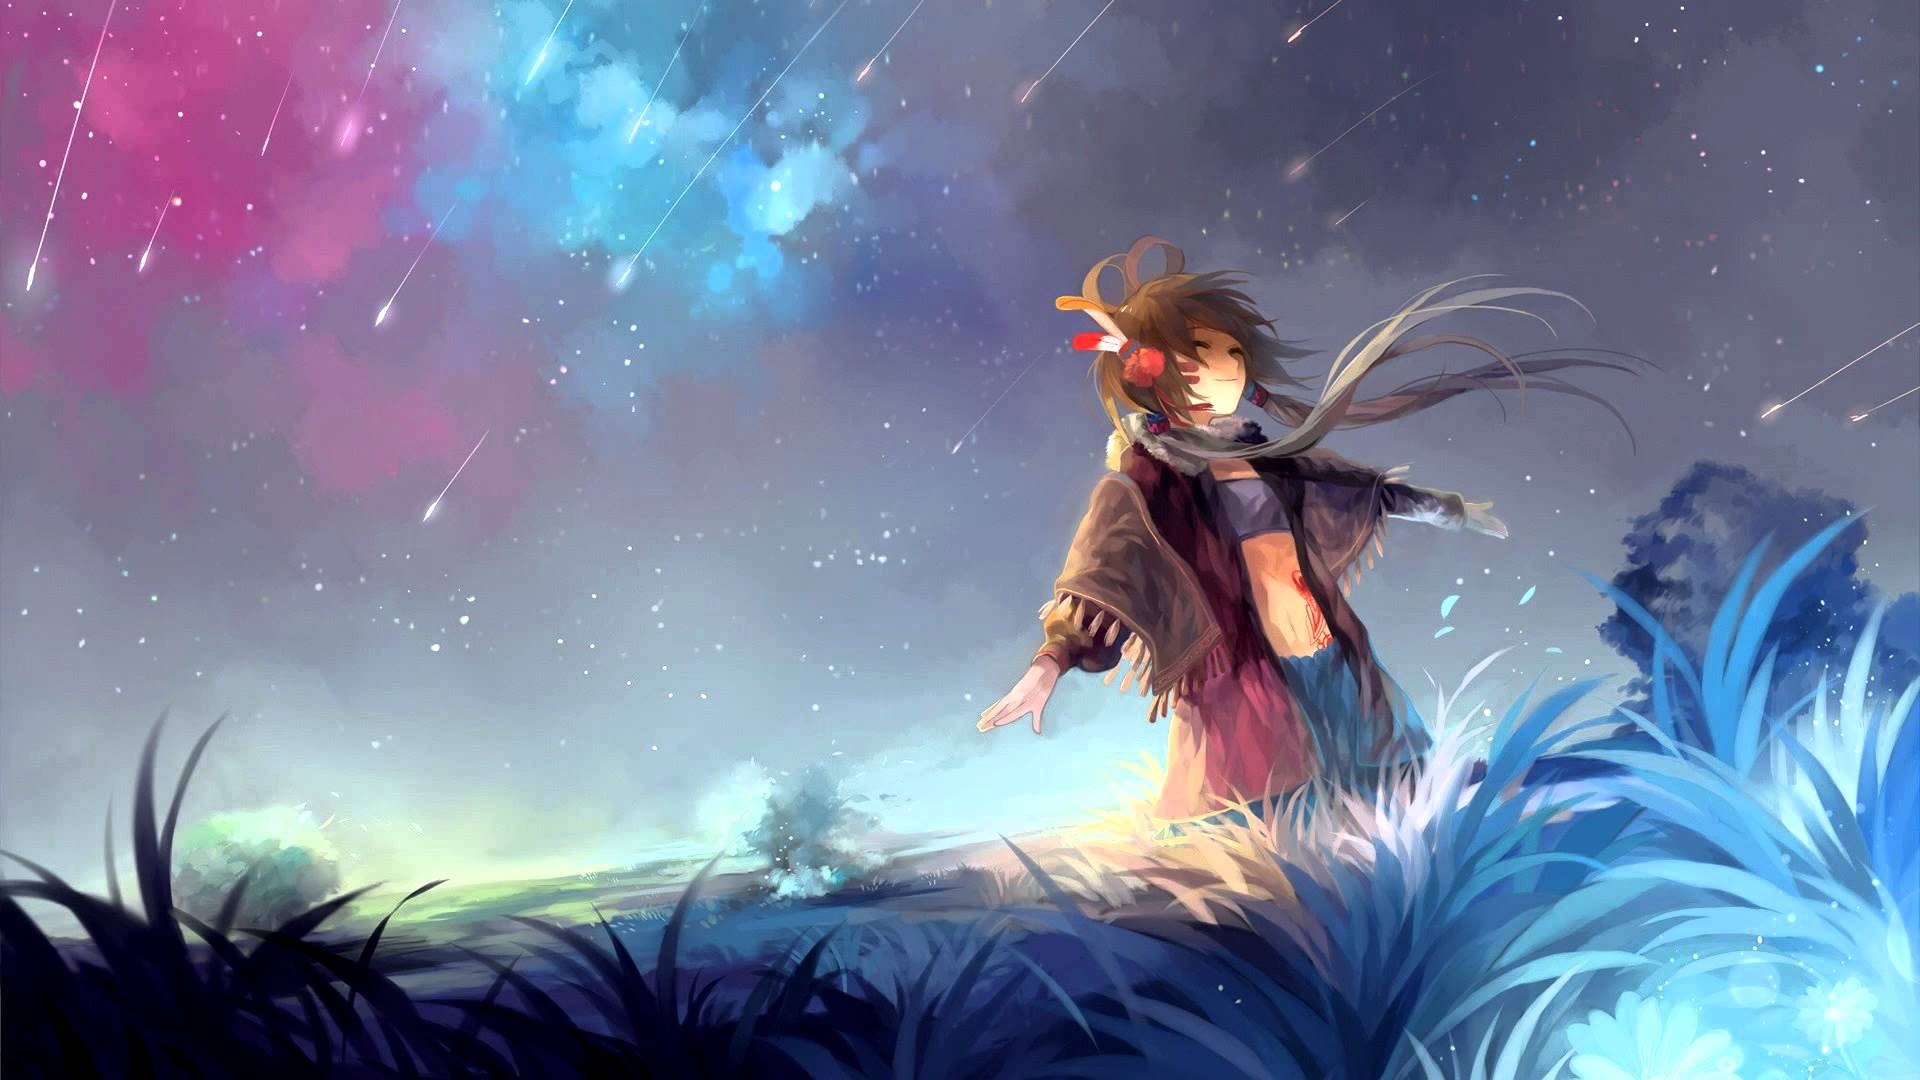 Pretty Anime Wallpapers, 42 Anime Android Compatible Pictures, NM